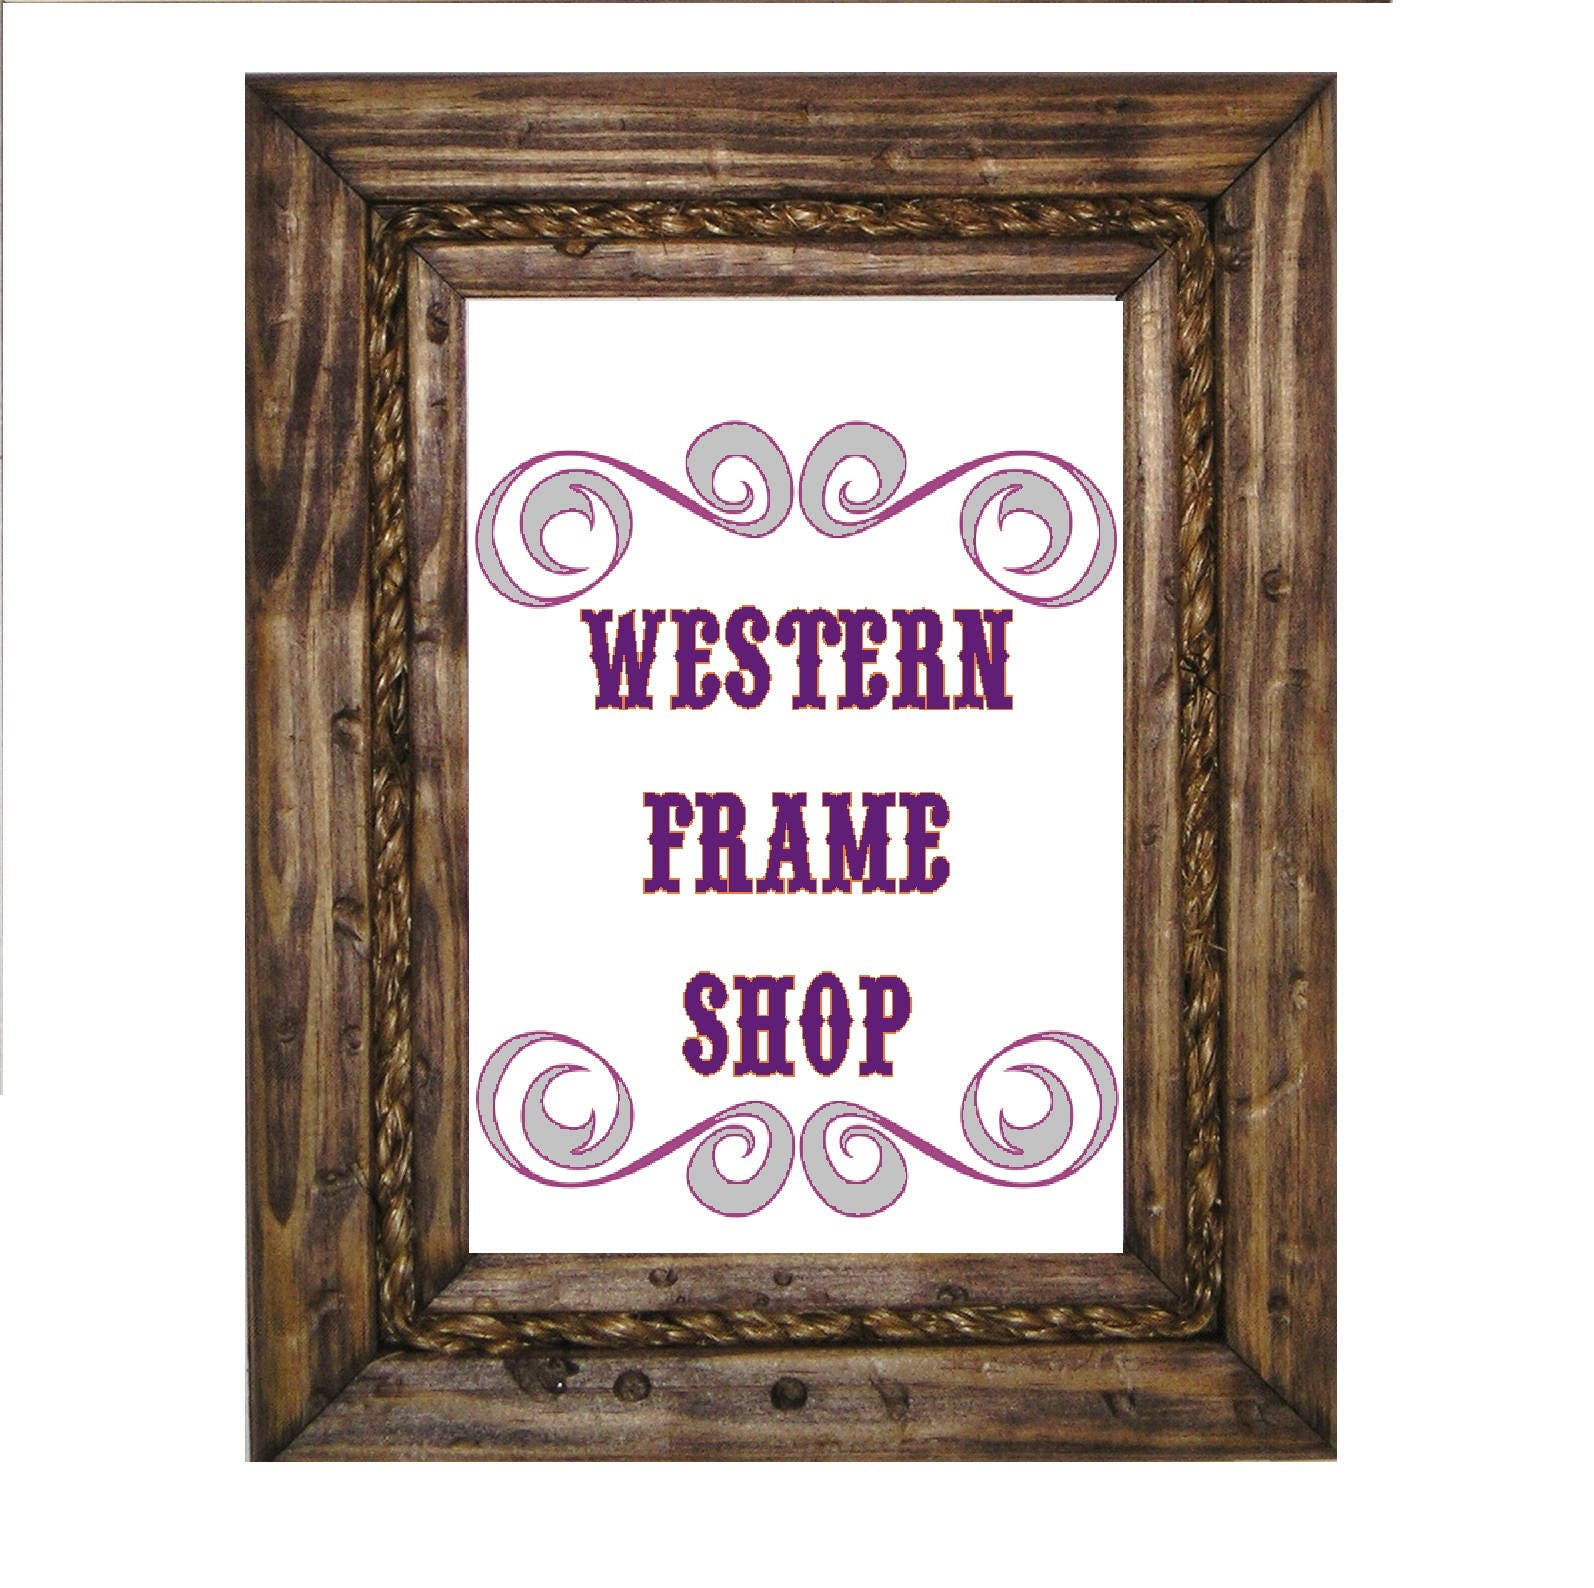 Nautical Rope Picture Frame. Cowboy Wood & Rope Picture Frame.